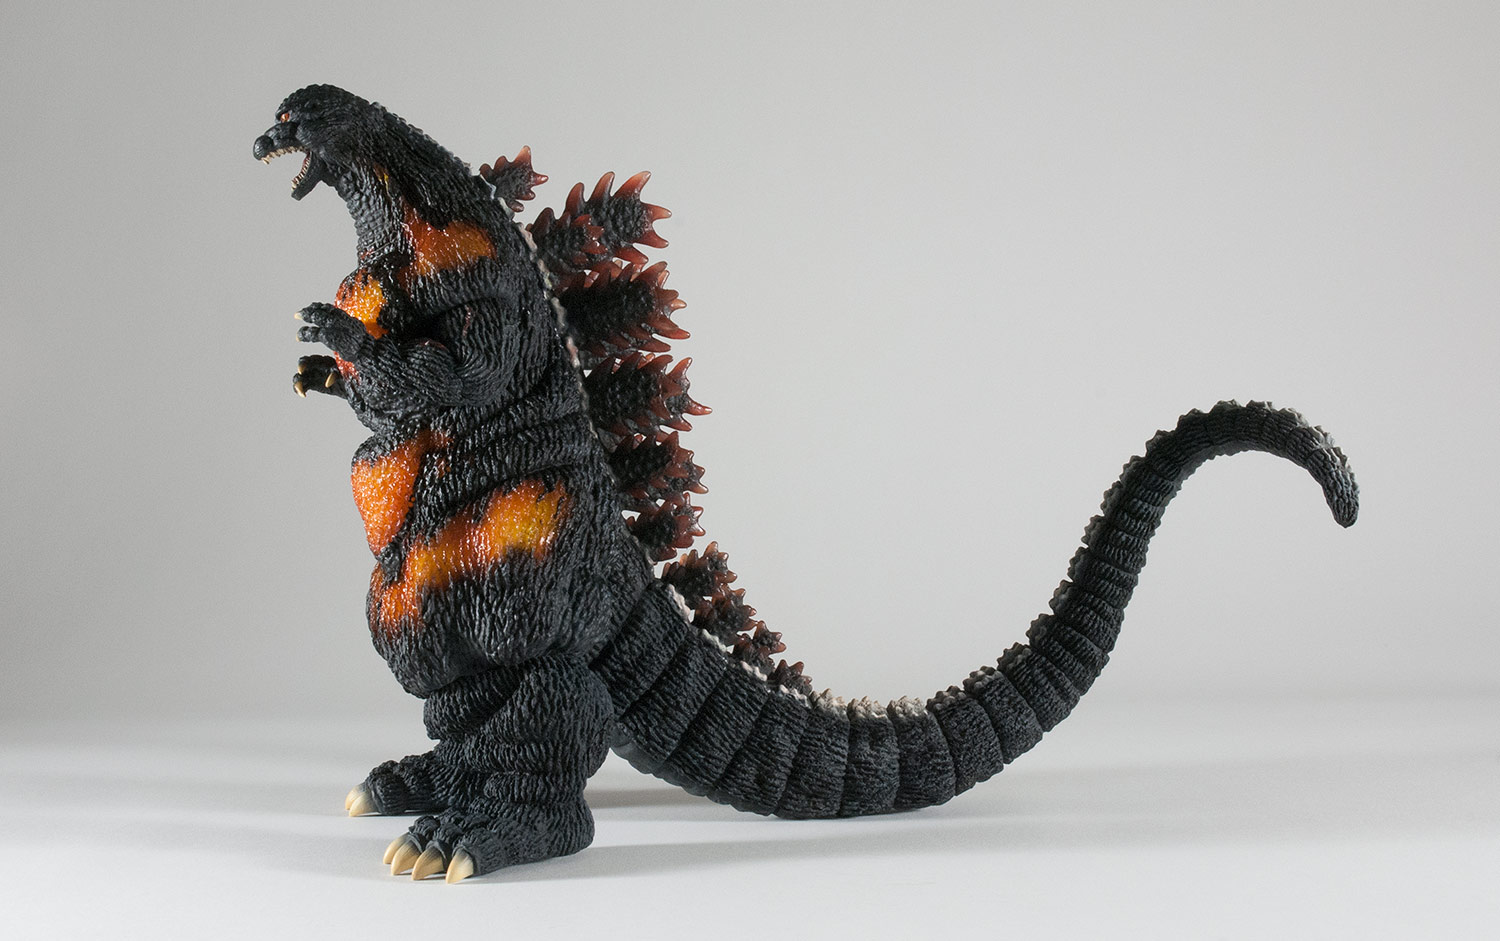 Full Review Large Monster Series Godzilla 1995 Vinyl